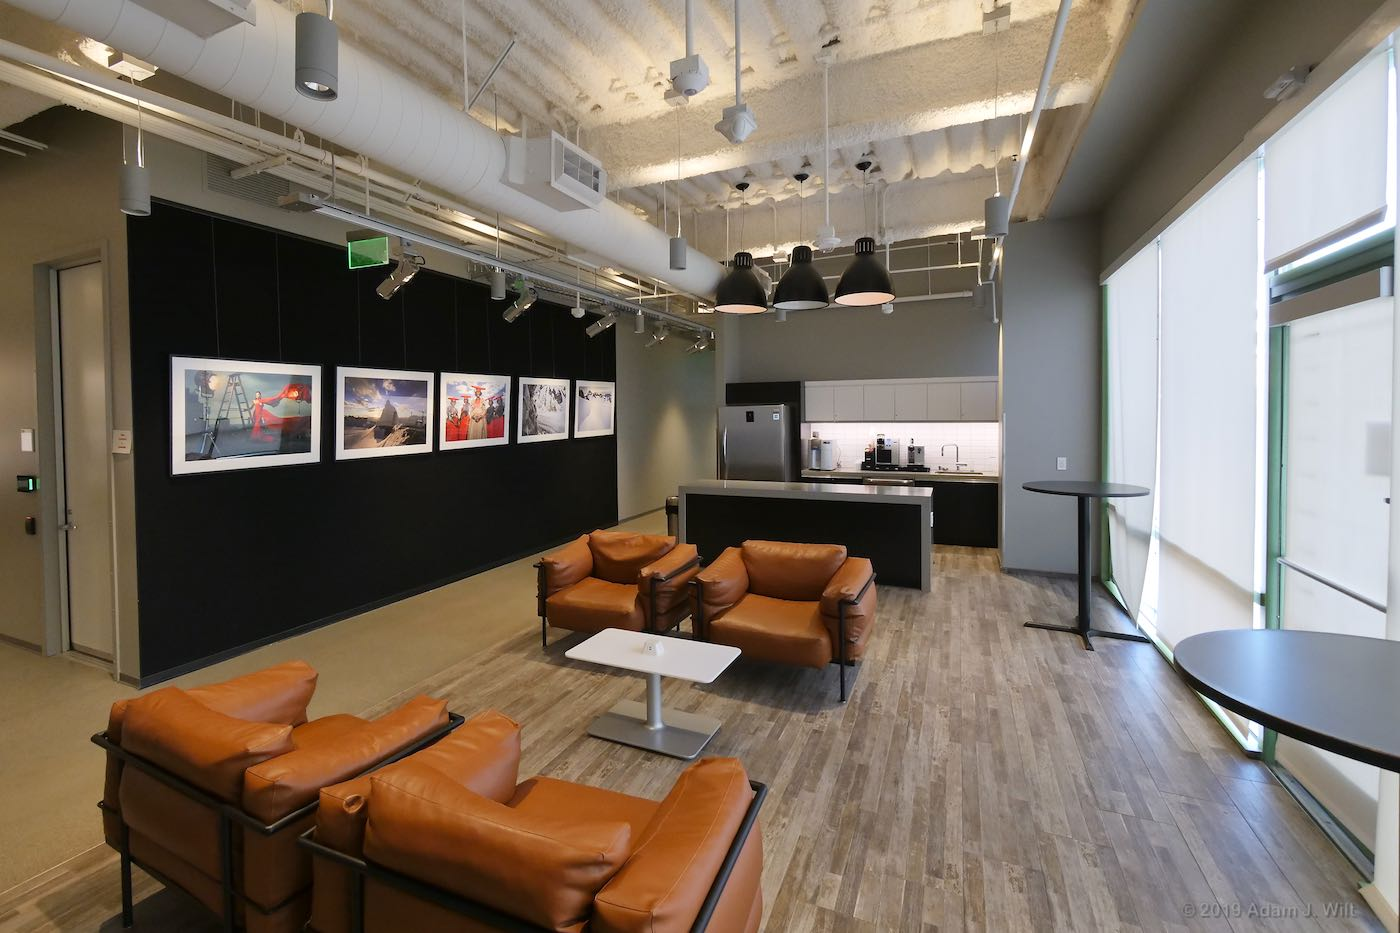 Lounge area, with EOS R photos on display. Screening room entrance on left